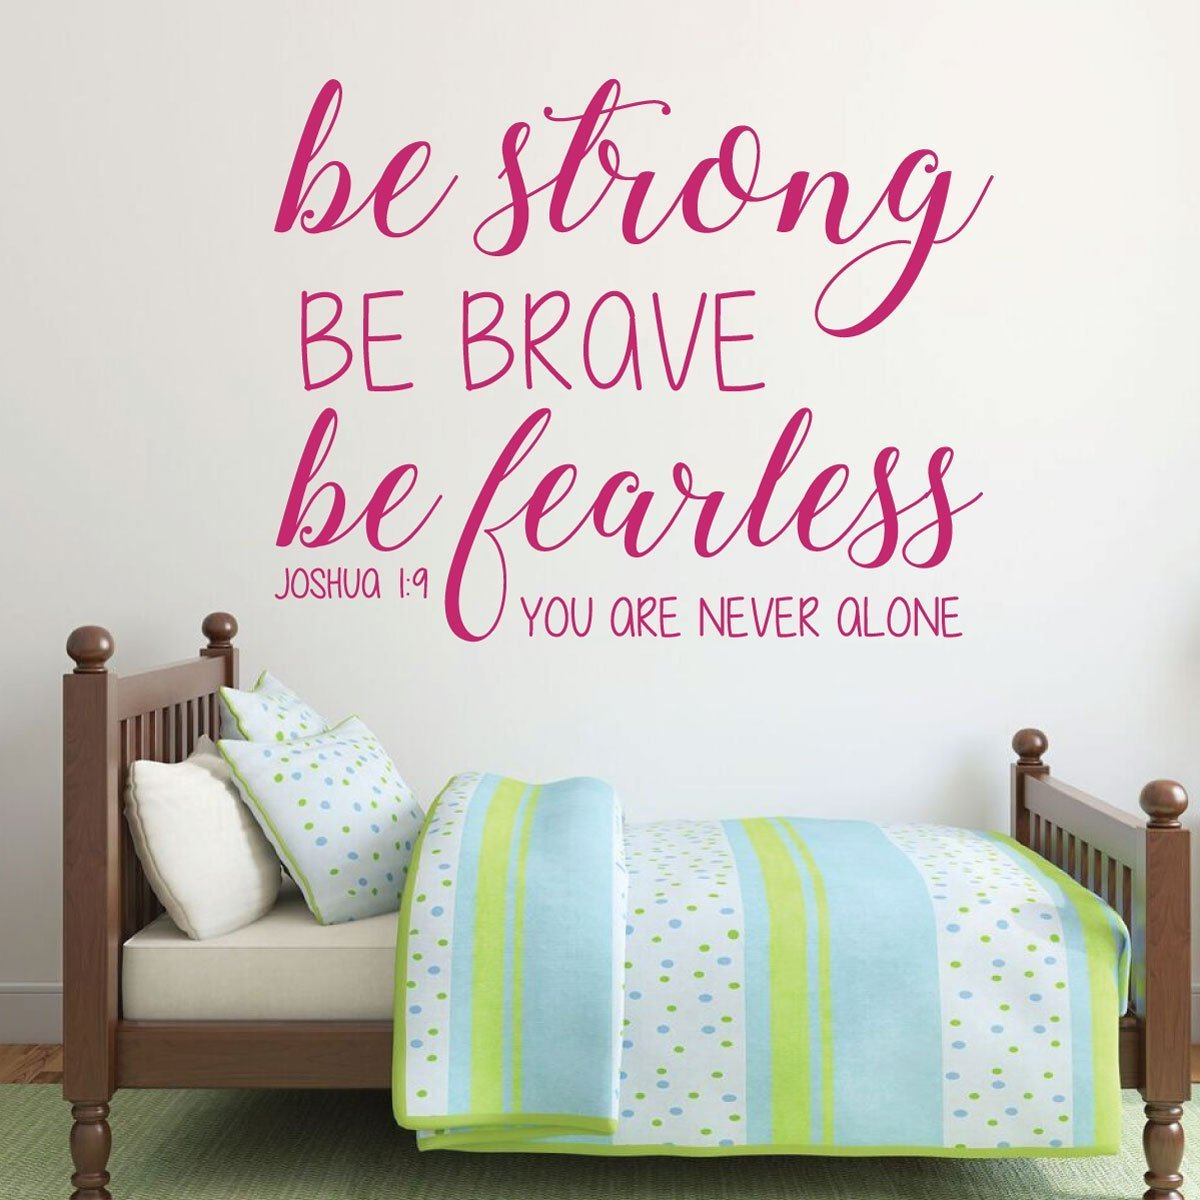 Bible Verse Wall Decal - Joshua 1:9 - Be Strong Be Brave Be Fearless You Are Never Alone opc 2